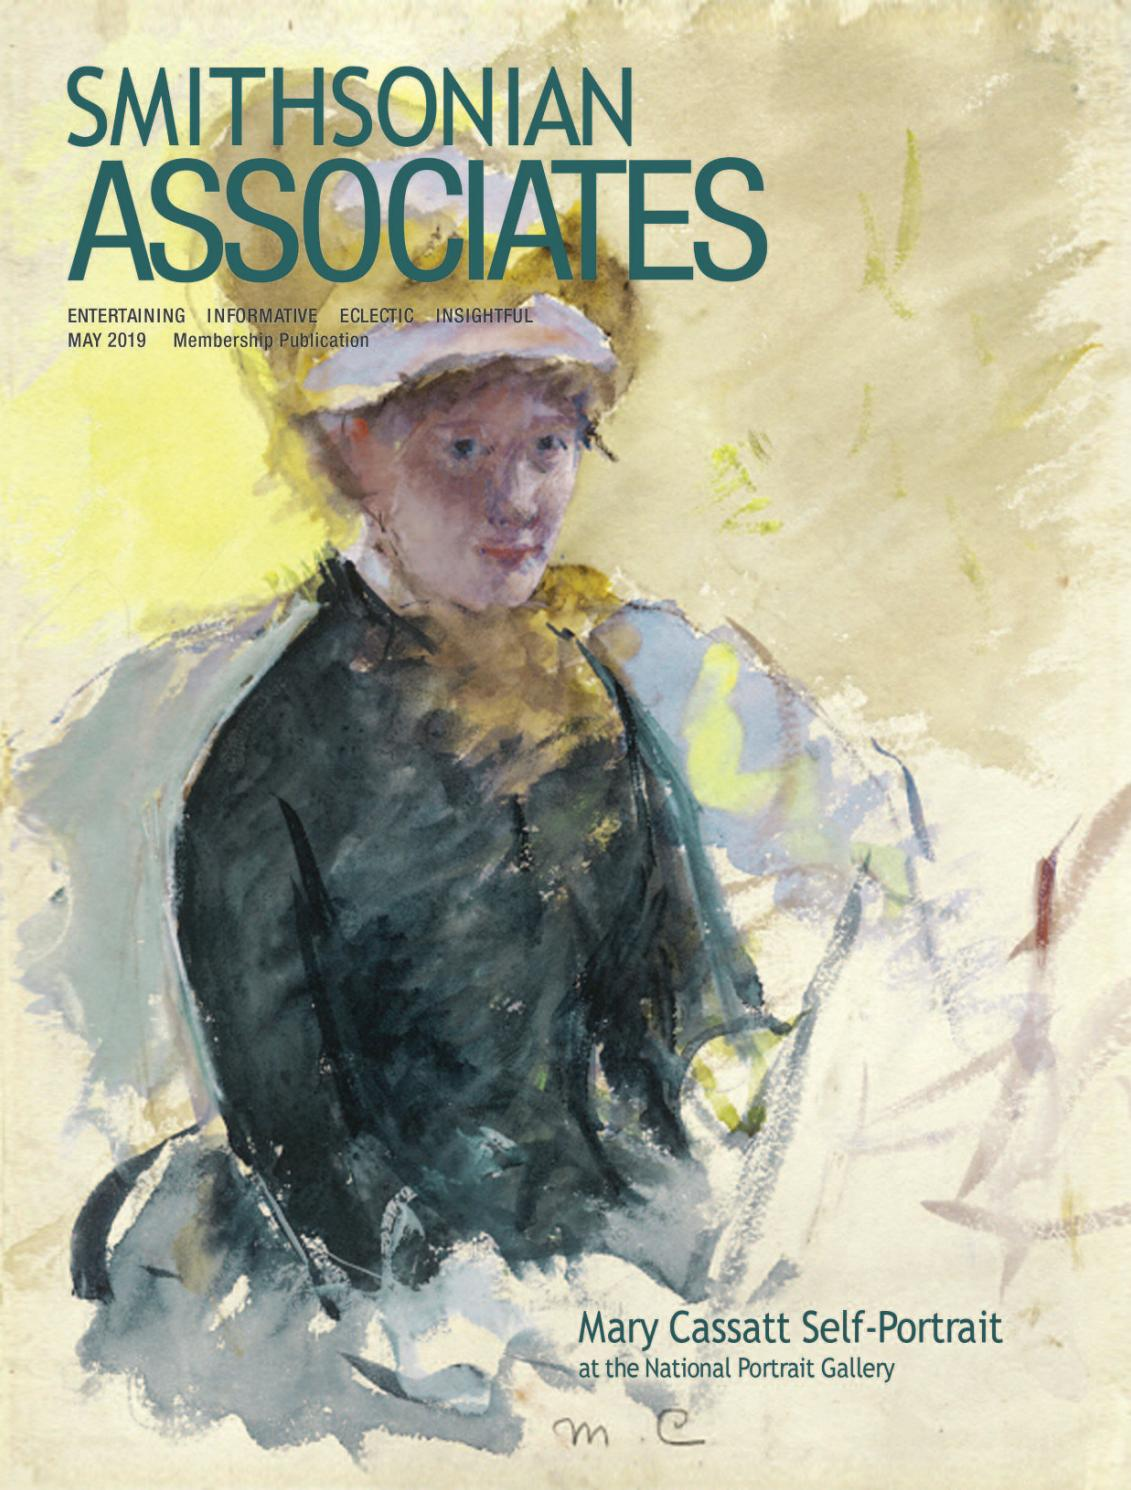 Smithsonian Associates May 2019 Program Guide By Smithsonian Associates Issuu